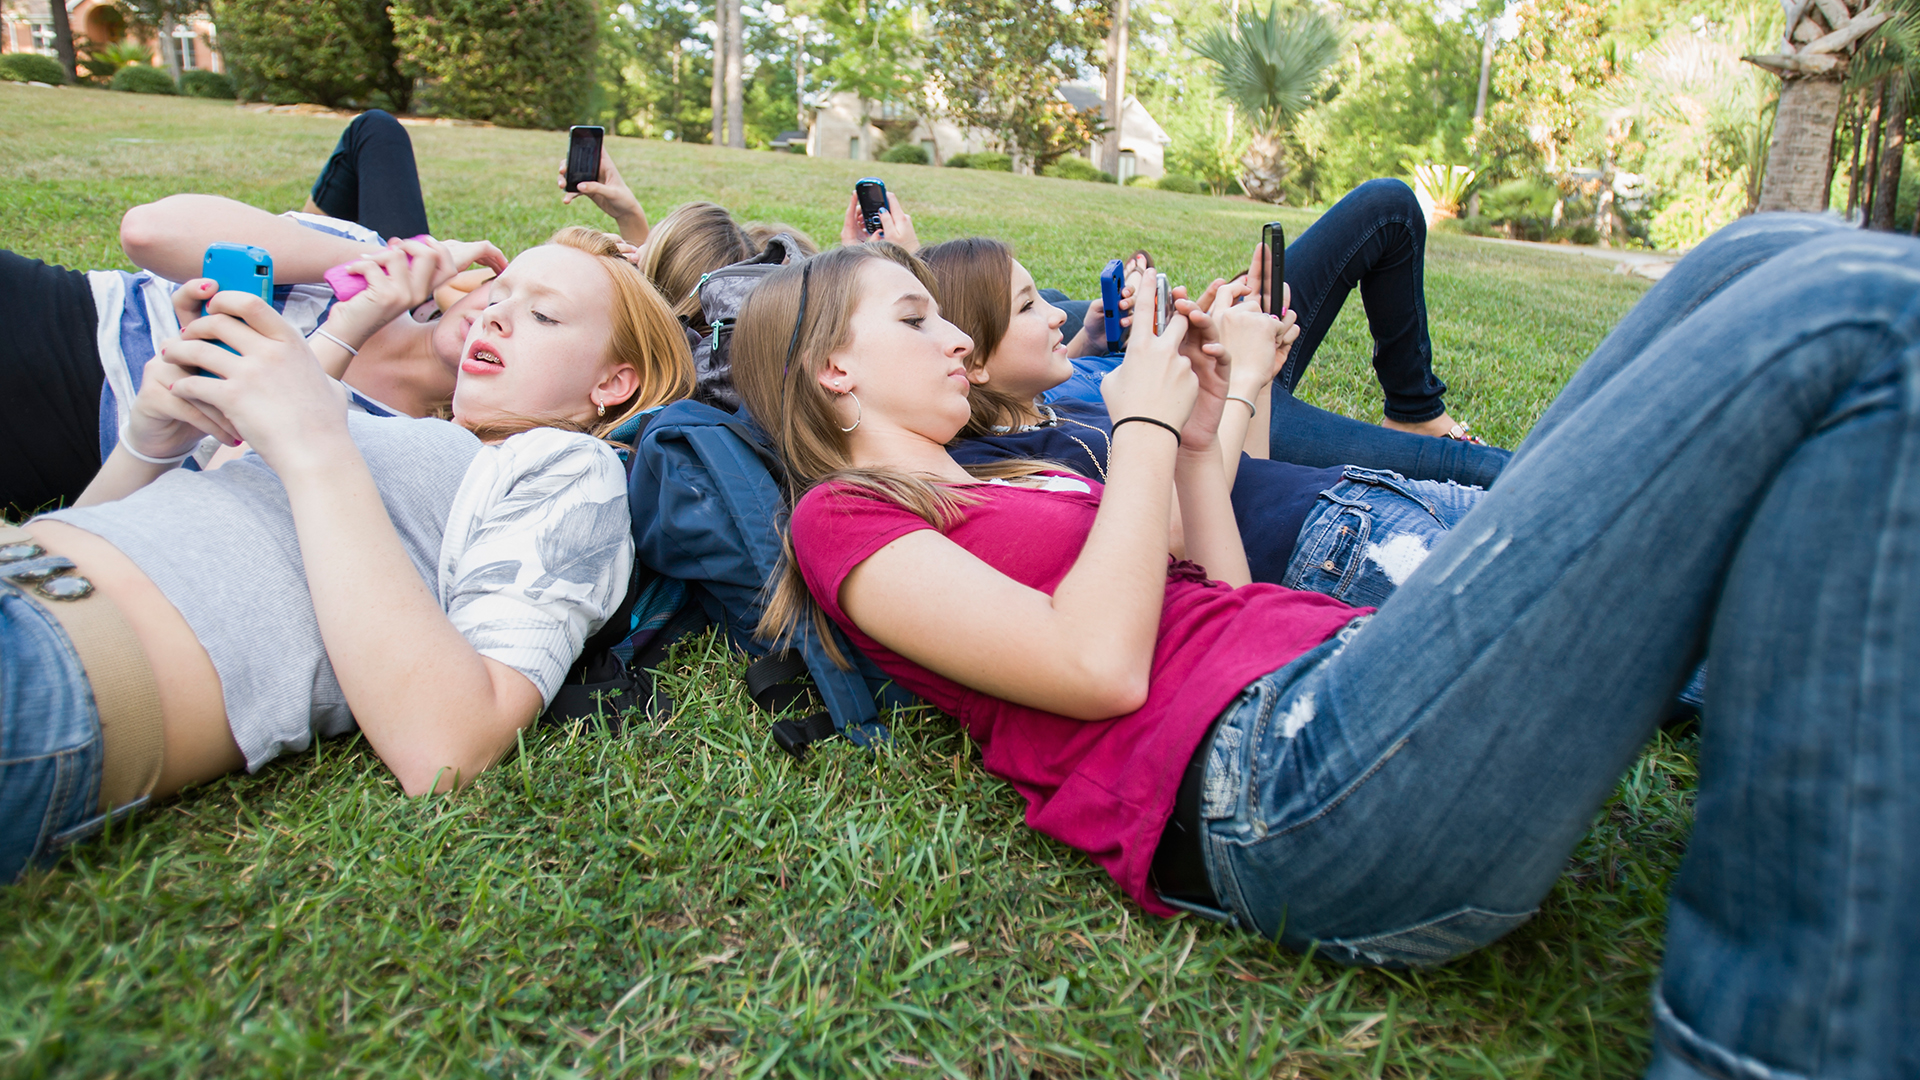 teen, teens, text, hang out, grass, outside, chidlren, school, kids, texting